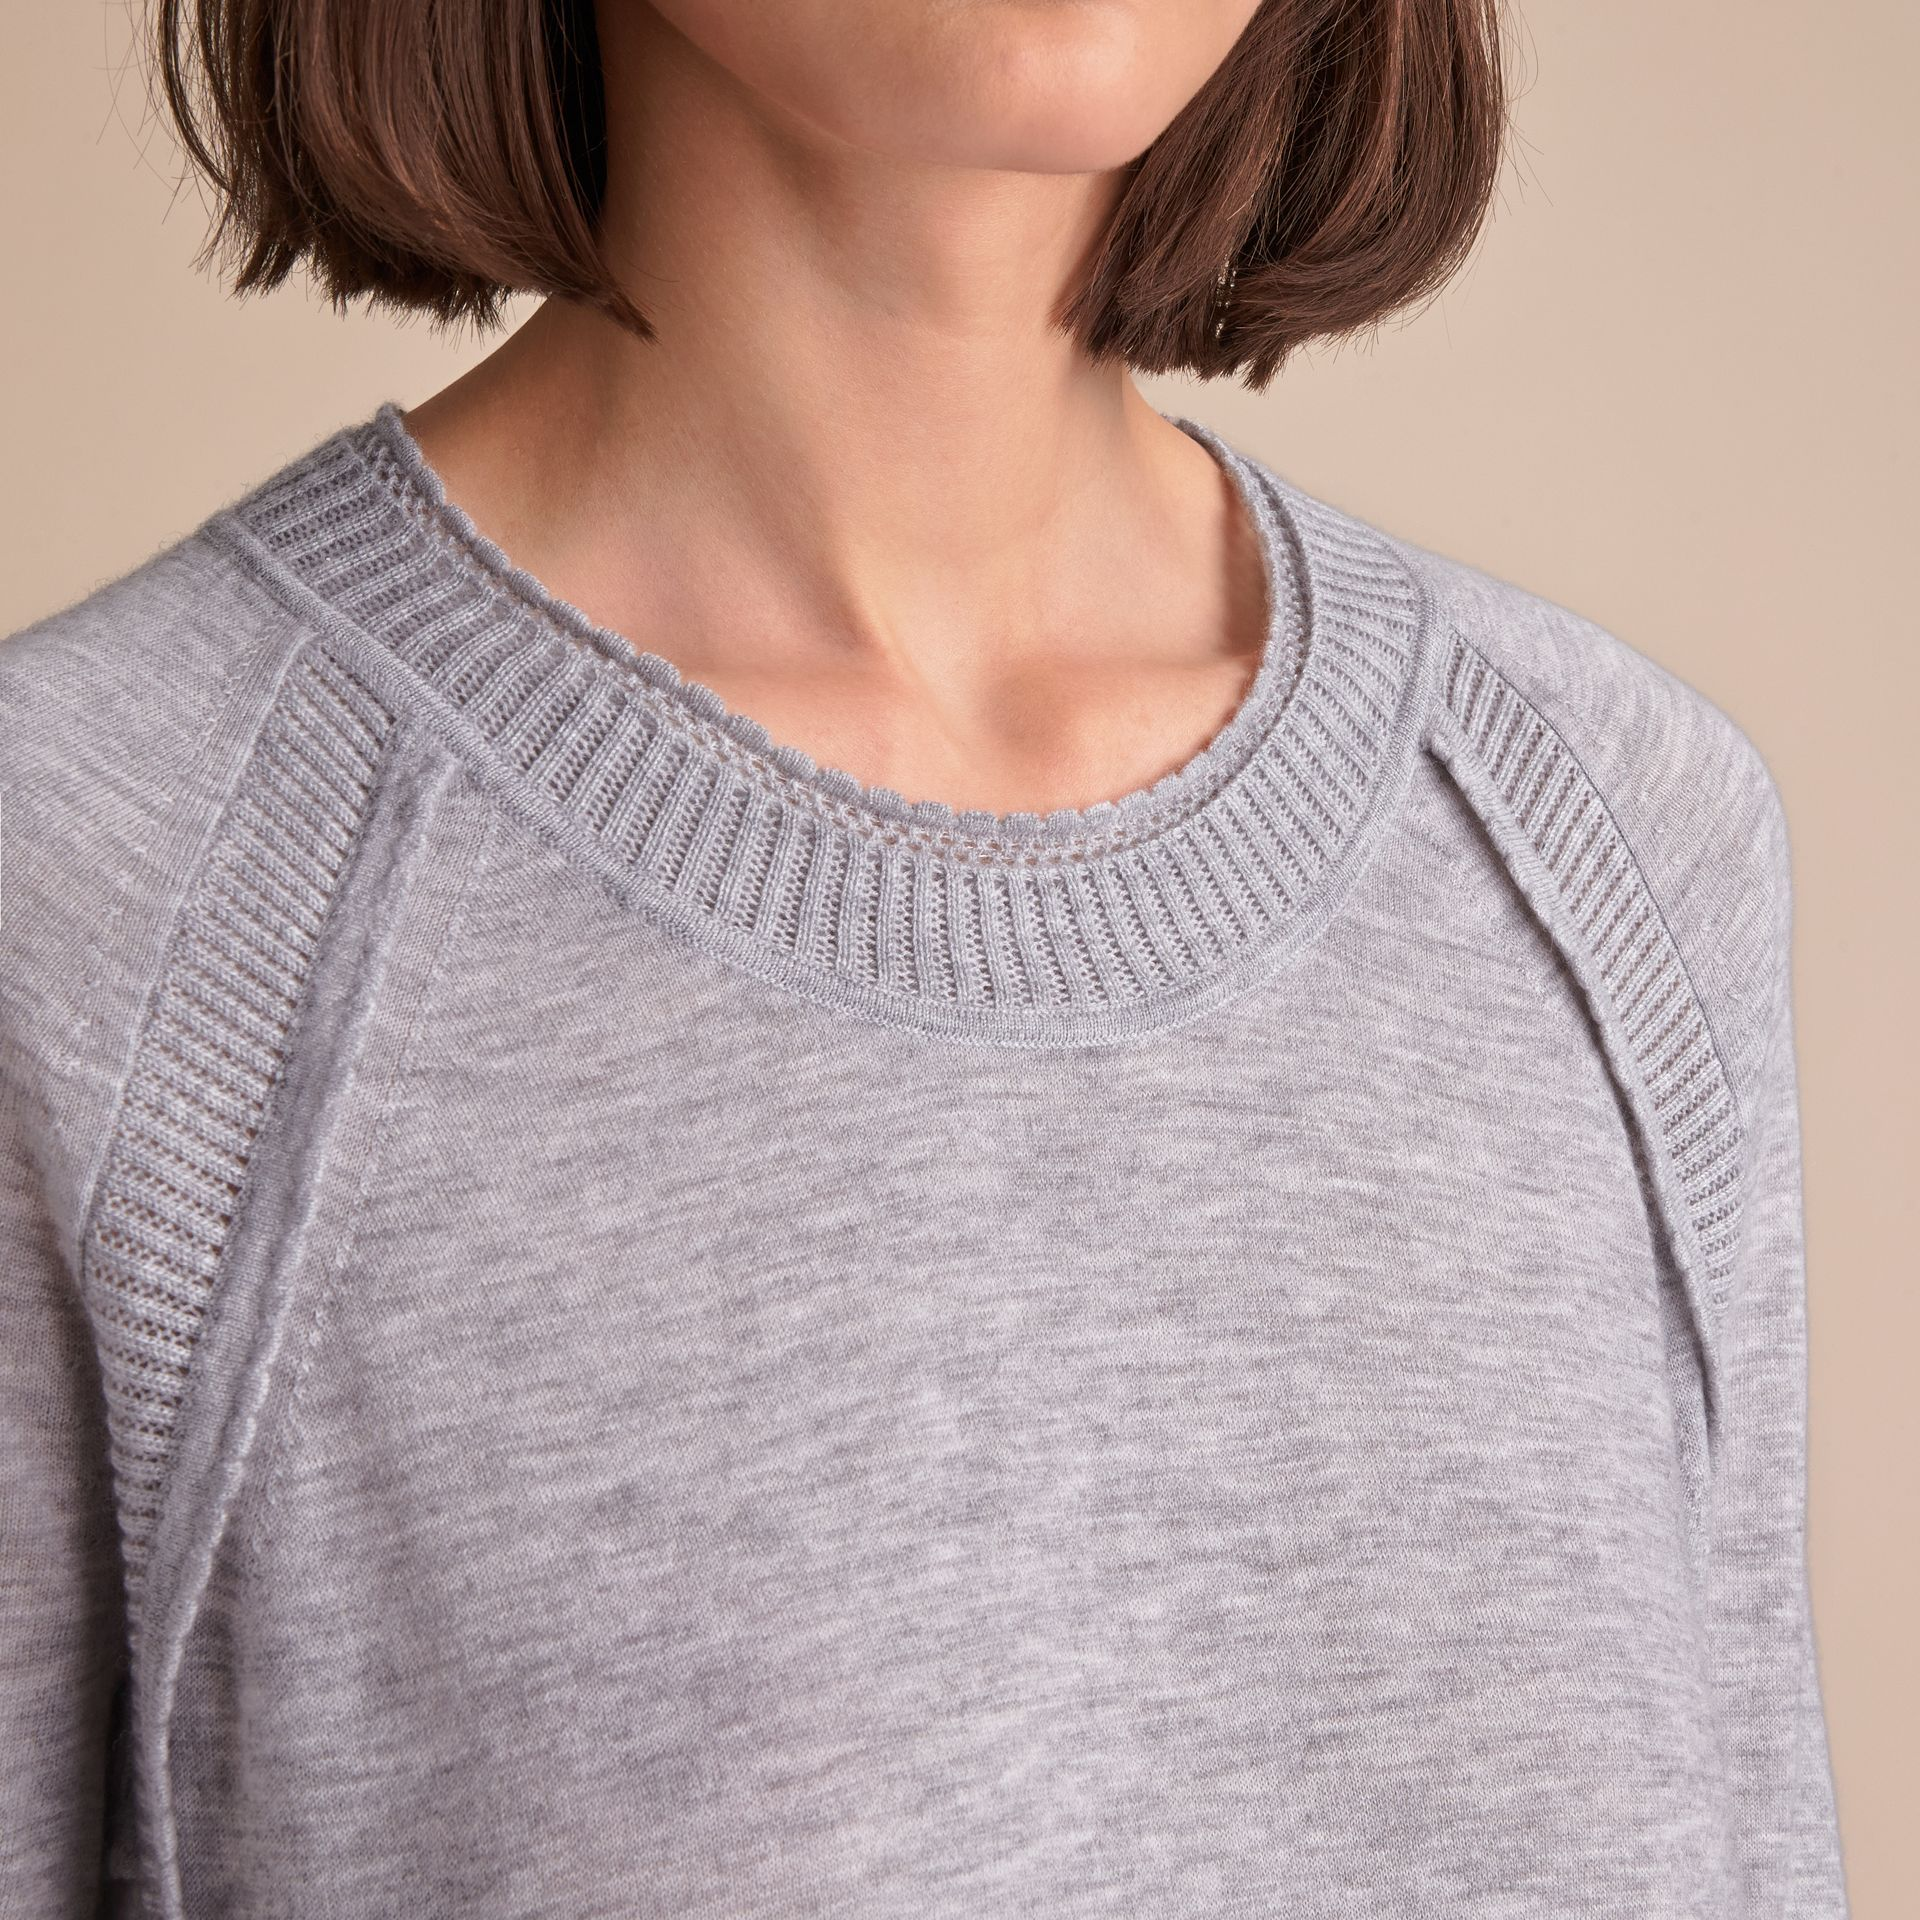 Open-knit Detail Cashmere Crew Neck Sweater in Light Grey Melange - Women | Burberry - gallery image 4